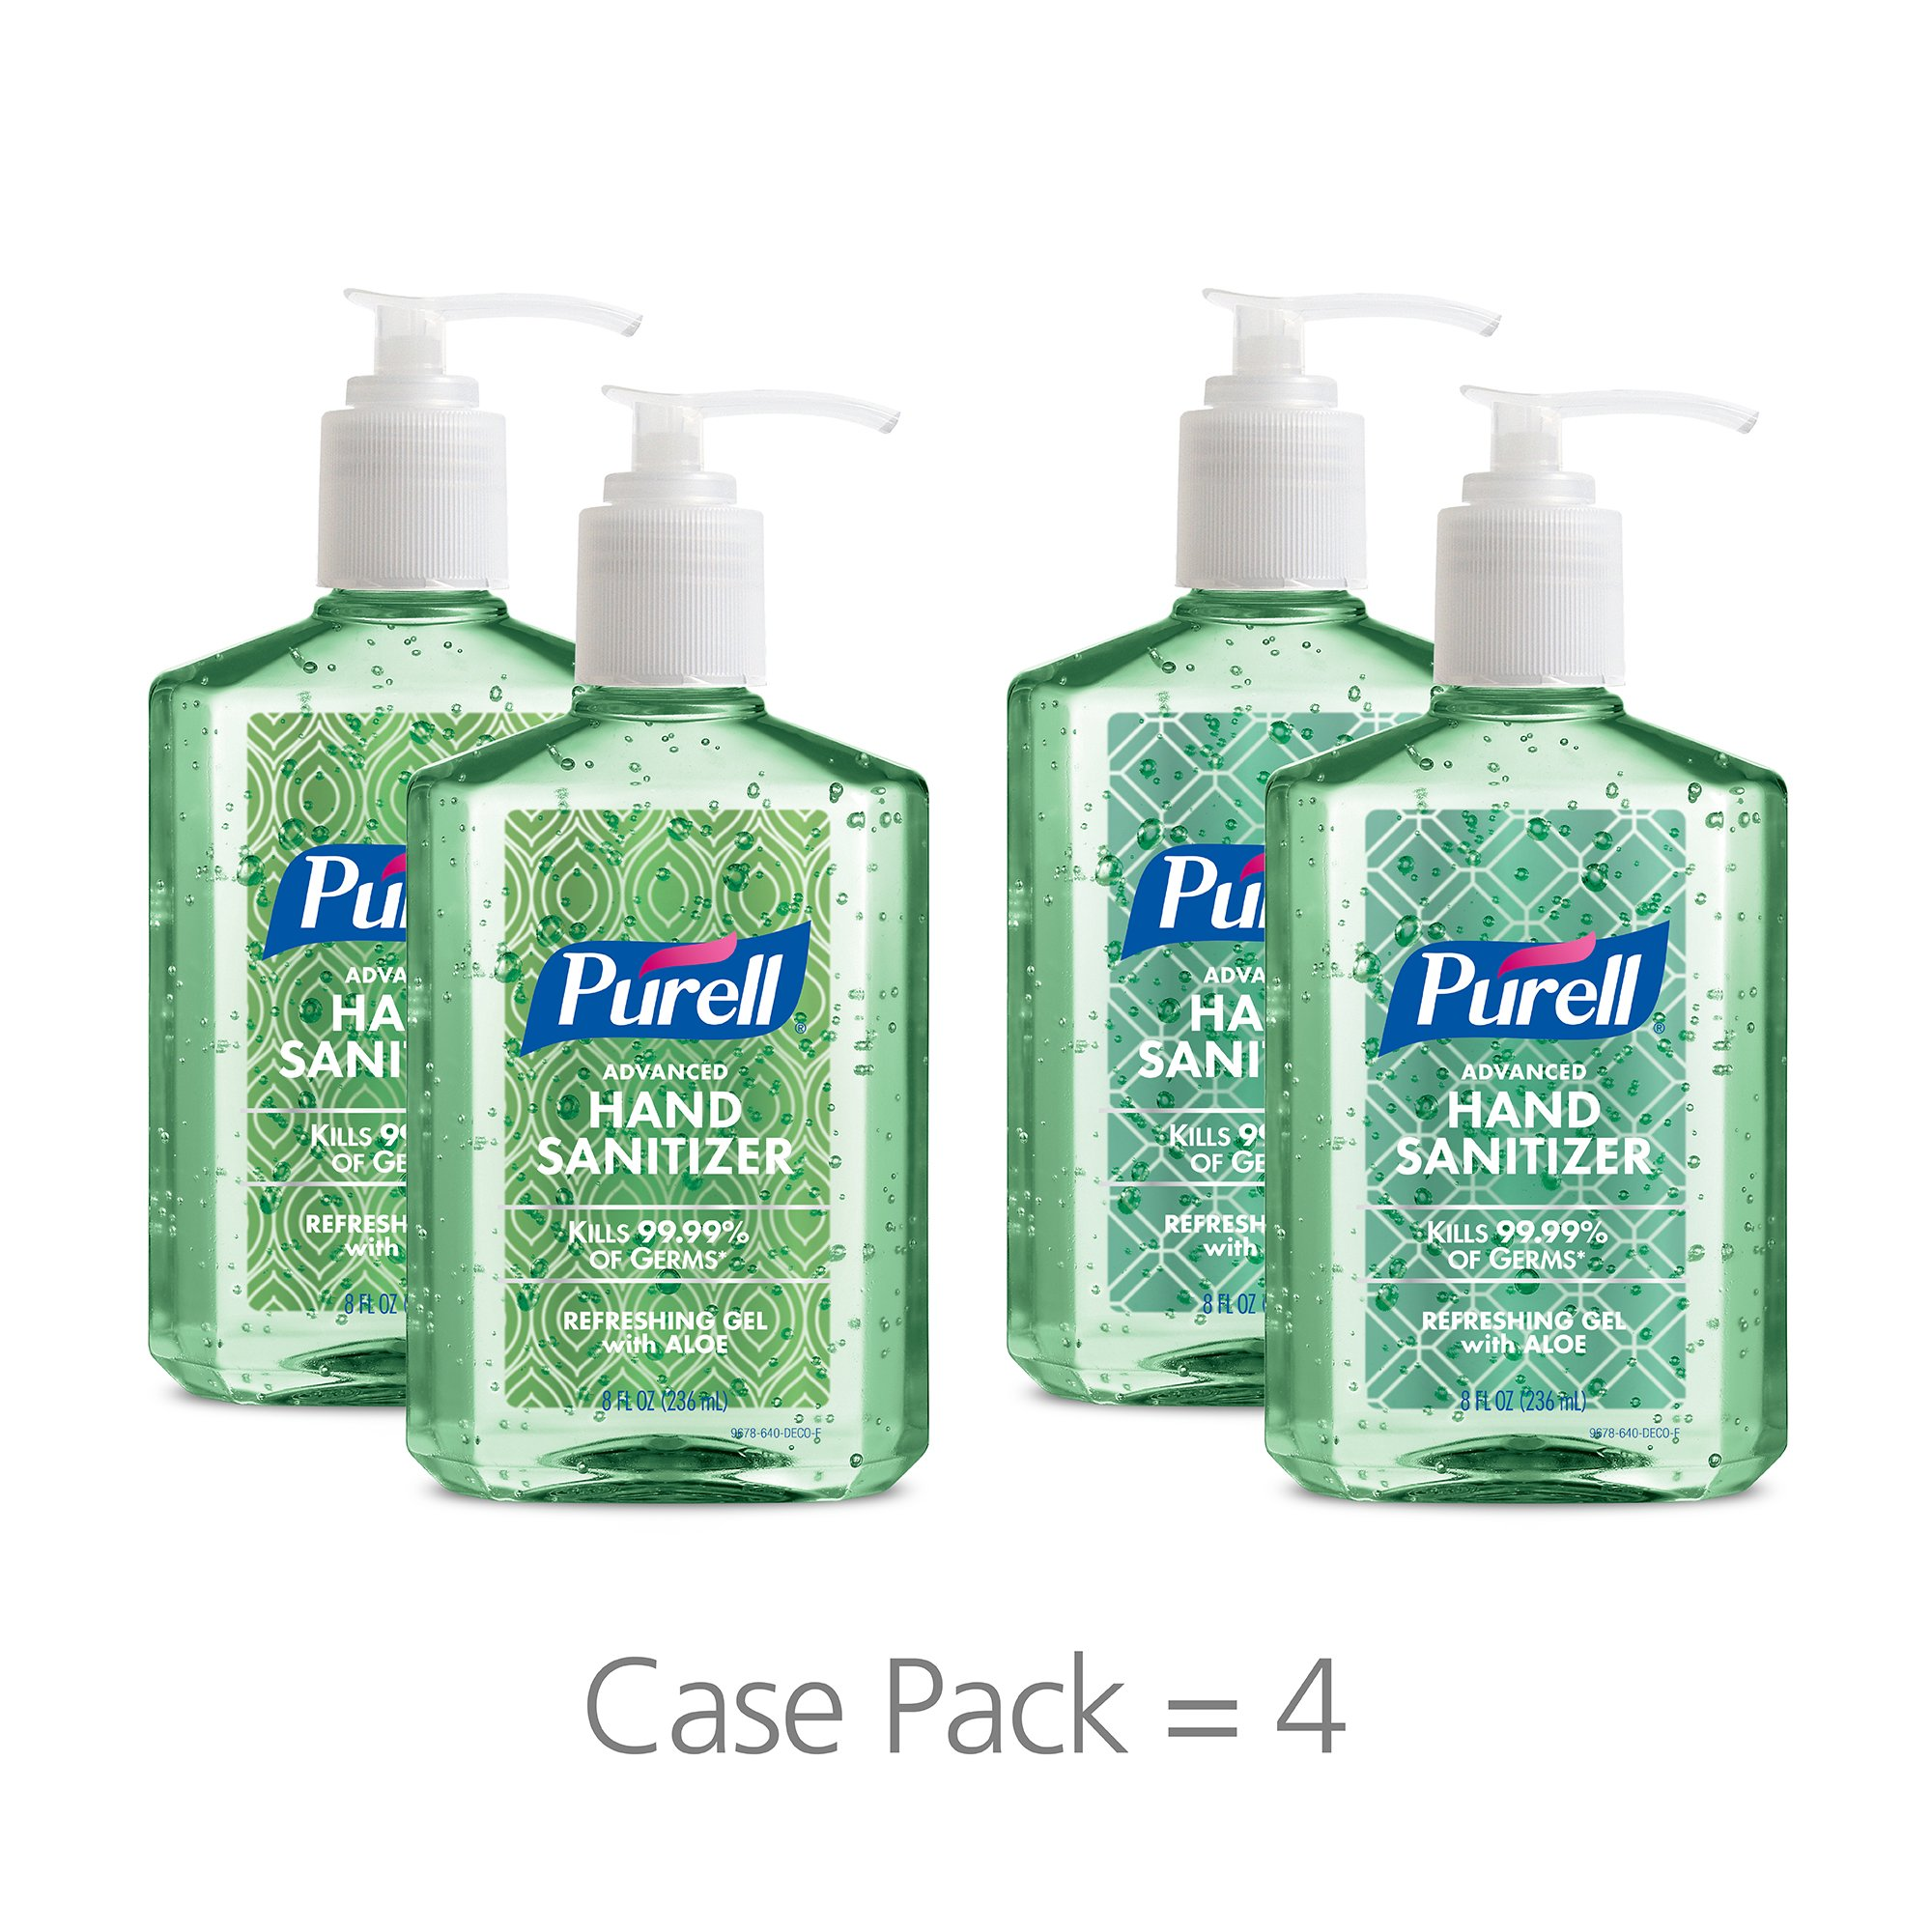 PURELL Advanced Hand Sanitizer Gel with Refreshing Aloe, Metalic Design Series, 8 fl oz Counter Top Pump Bottle (Pack of 4) 9678-06-ECDECO